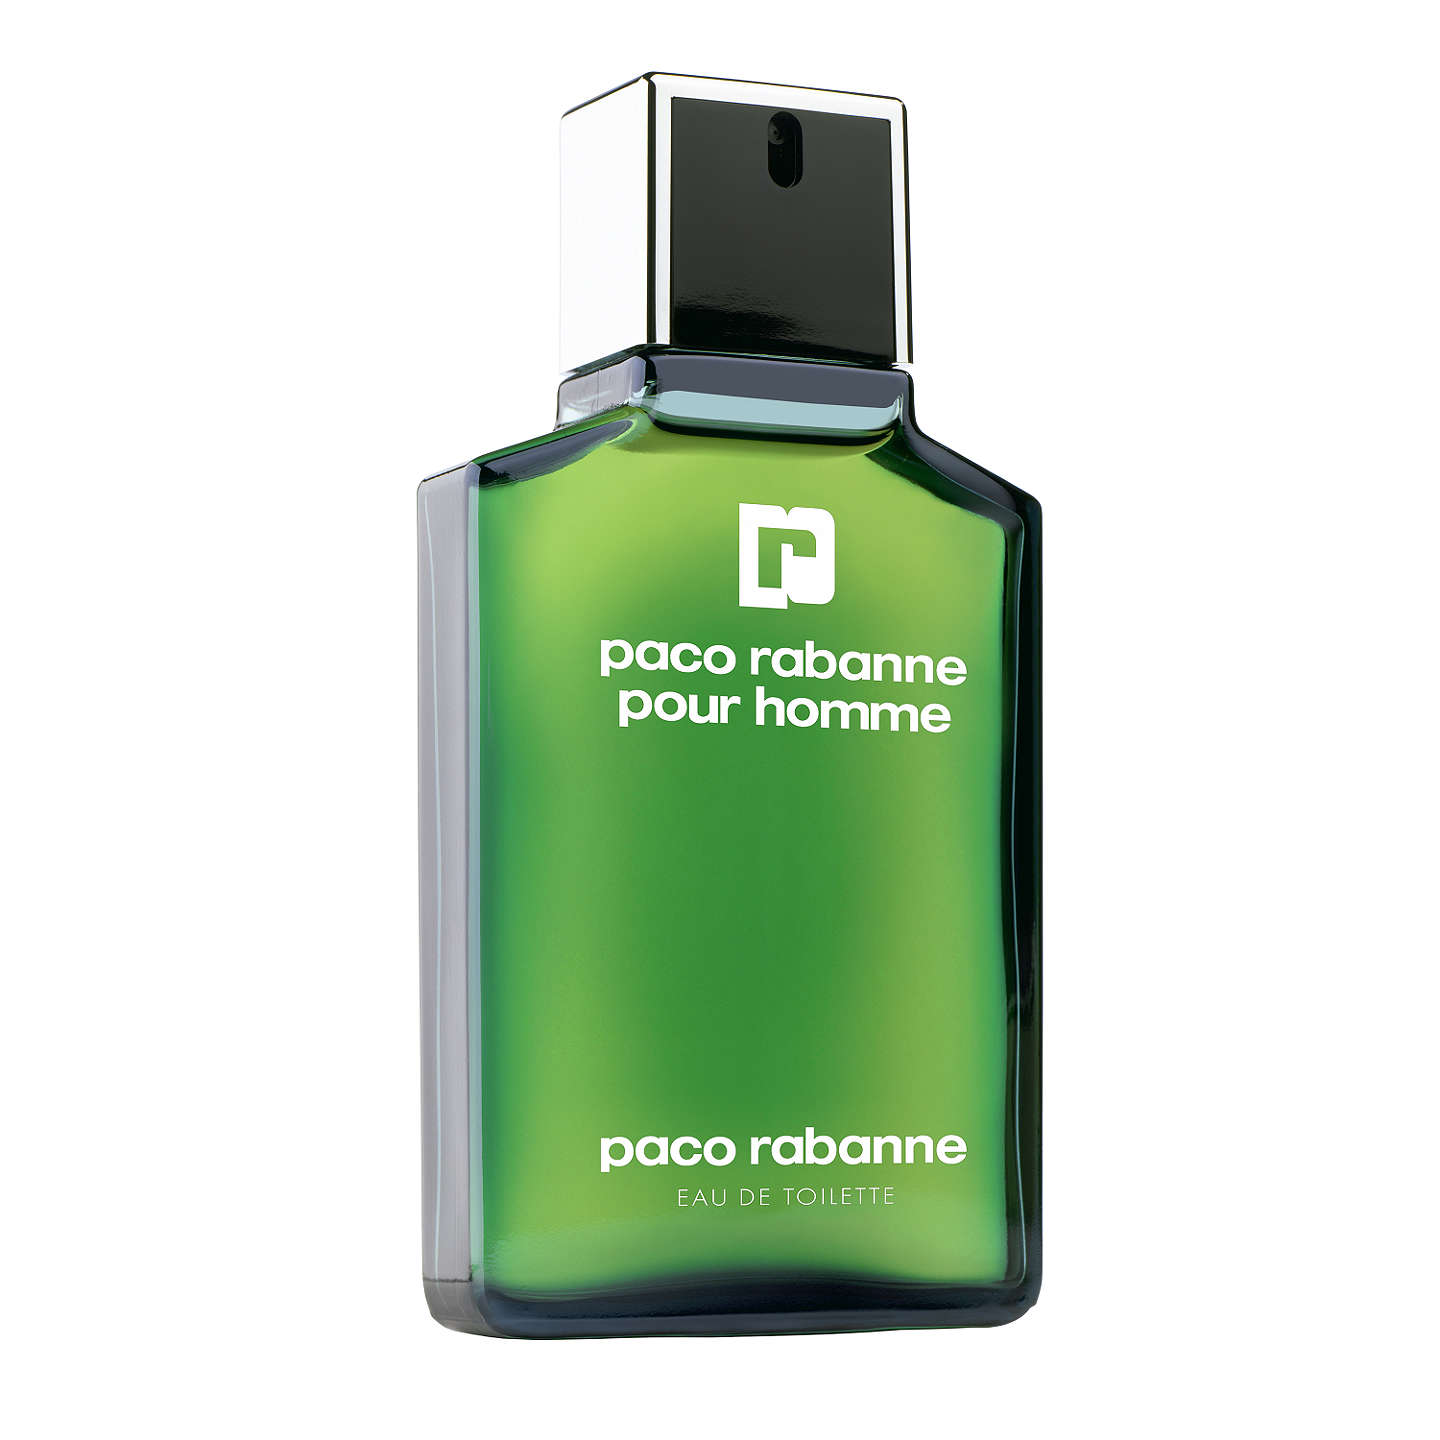 BuyPaco Rabanne Pour Homme Eau de Toilette Spray, 100ml Online at johnlewis.com